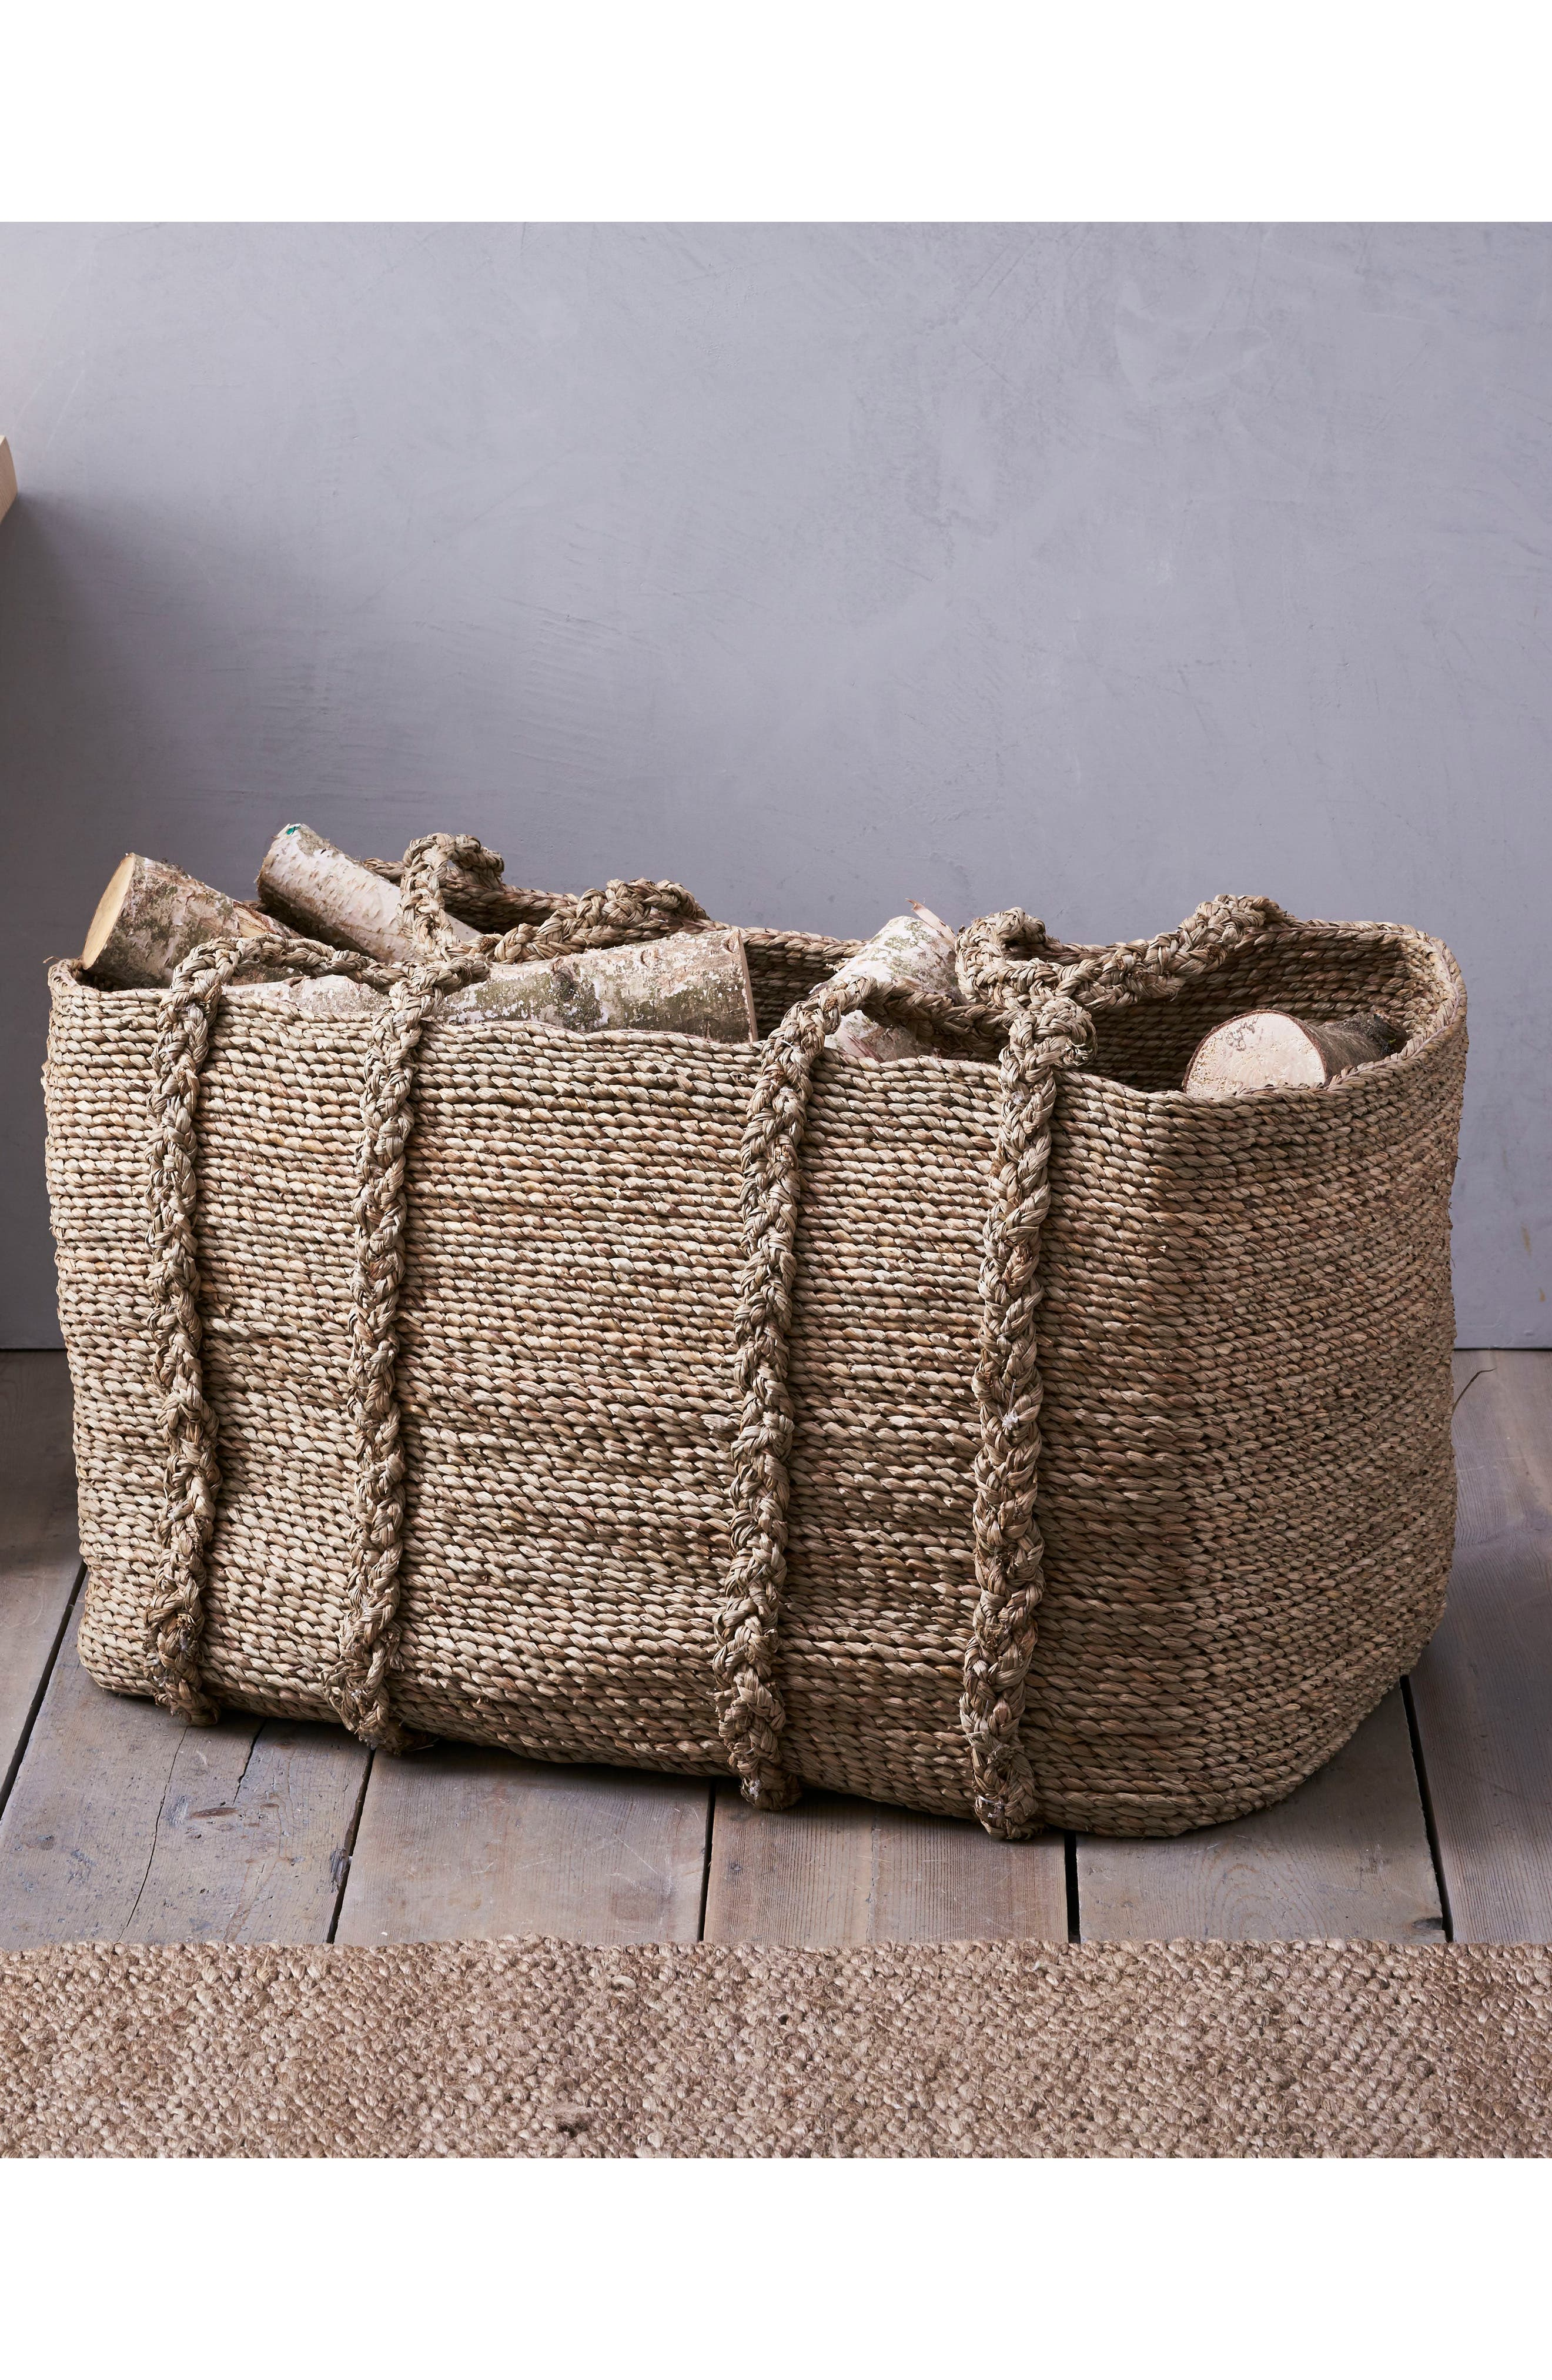 THE WHITE COMPANY, Large Woven Storage Basket, Main thumbnail 1, color, NATURAL